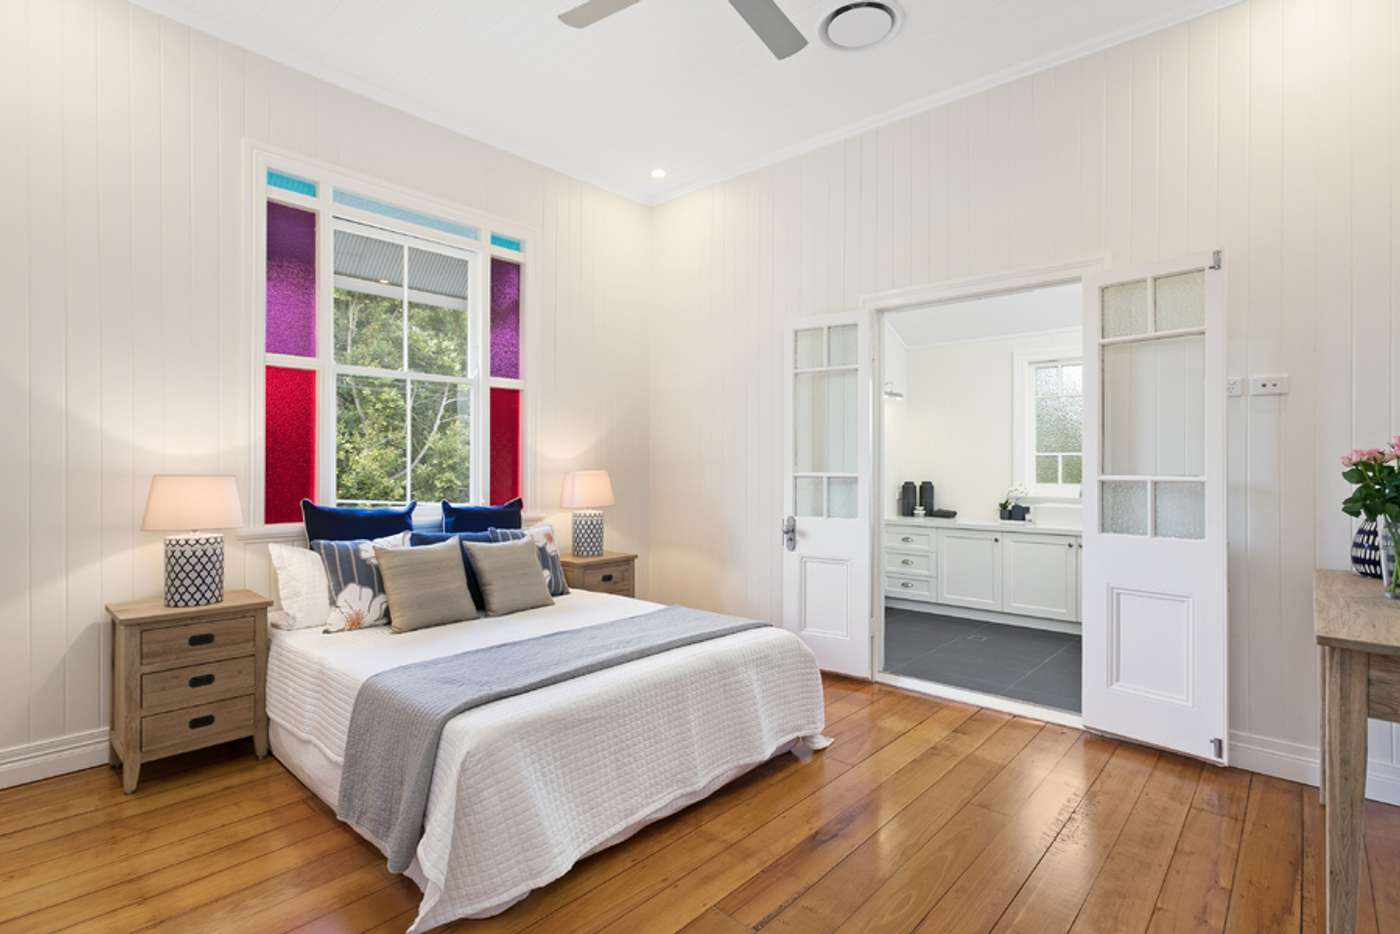 Sixth view of Homely house listing, 27 Mark Street, Newmarket QLD 4051